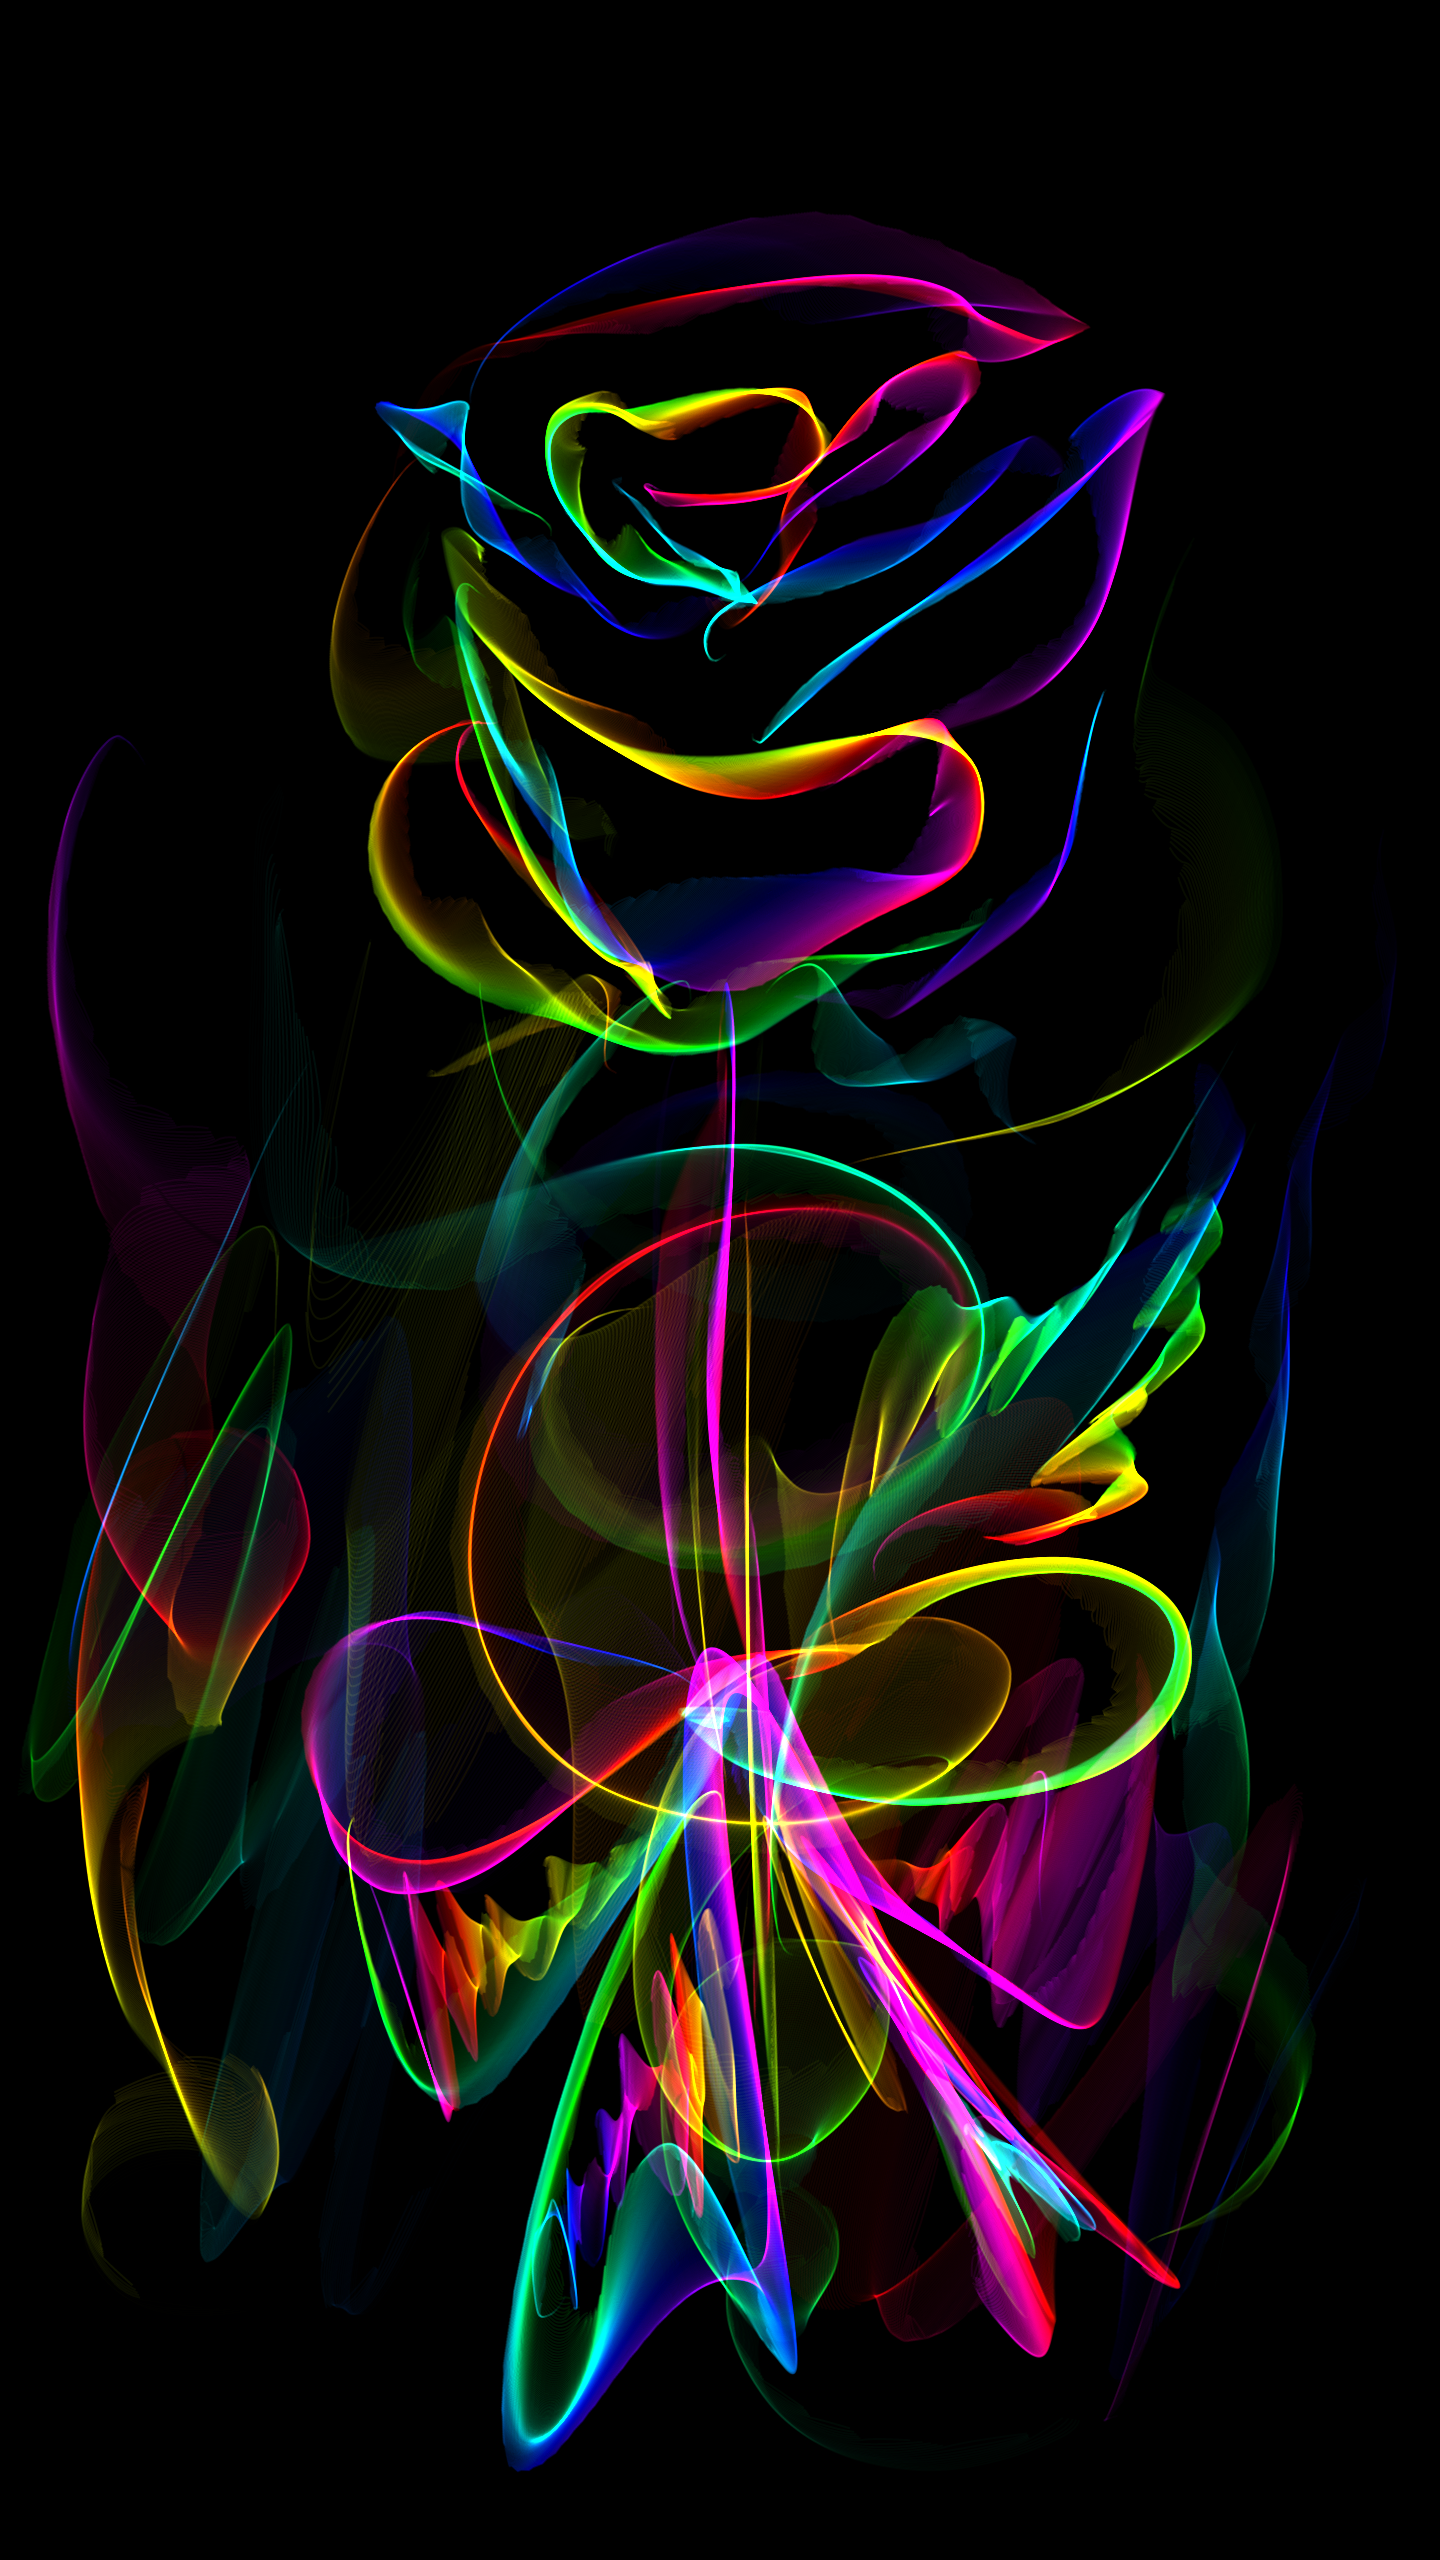 Roses Rainbow Gift Bouquet Flower Art Leafes Drawing Black Neon Android Wallpaper Android Wallpaper Black Neon Wallpaper